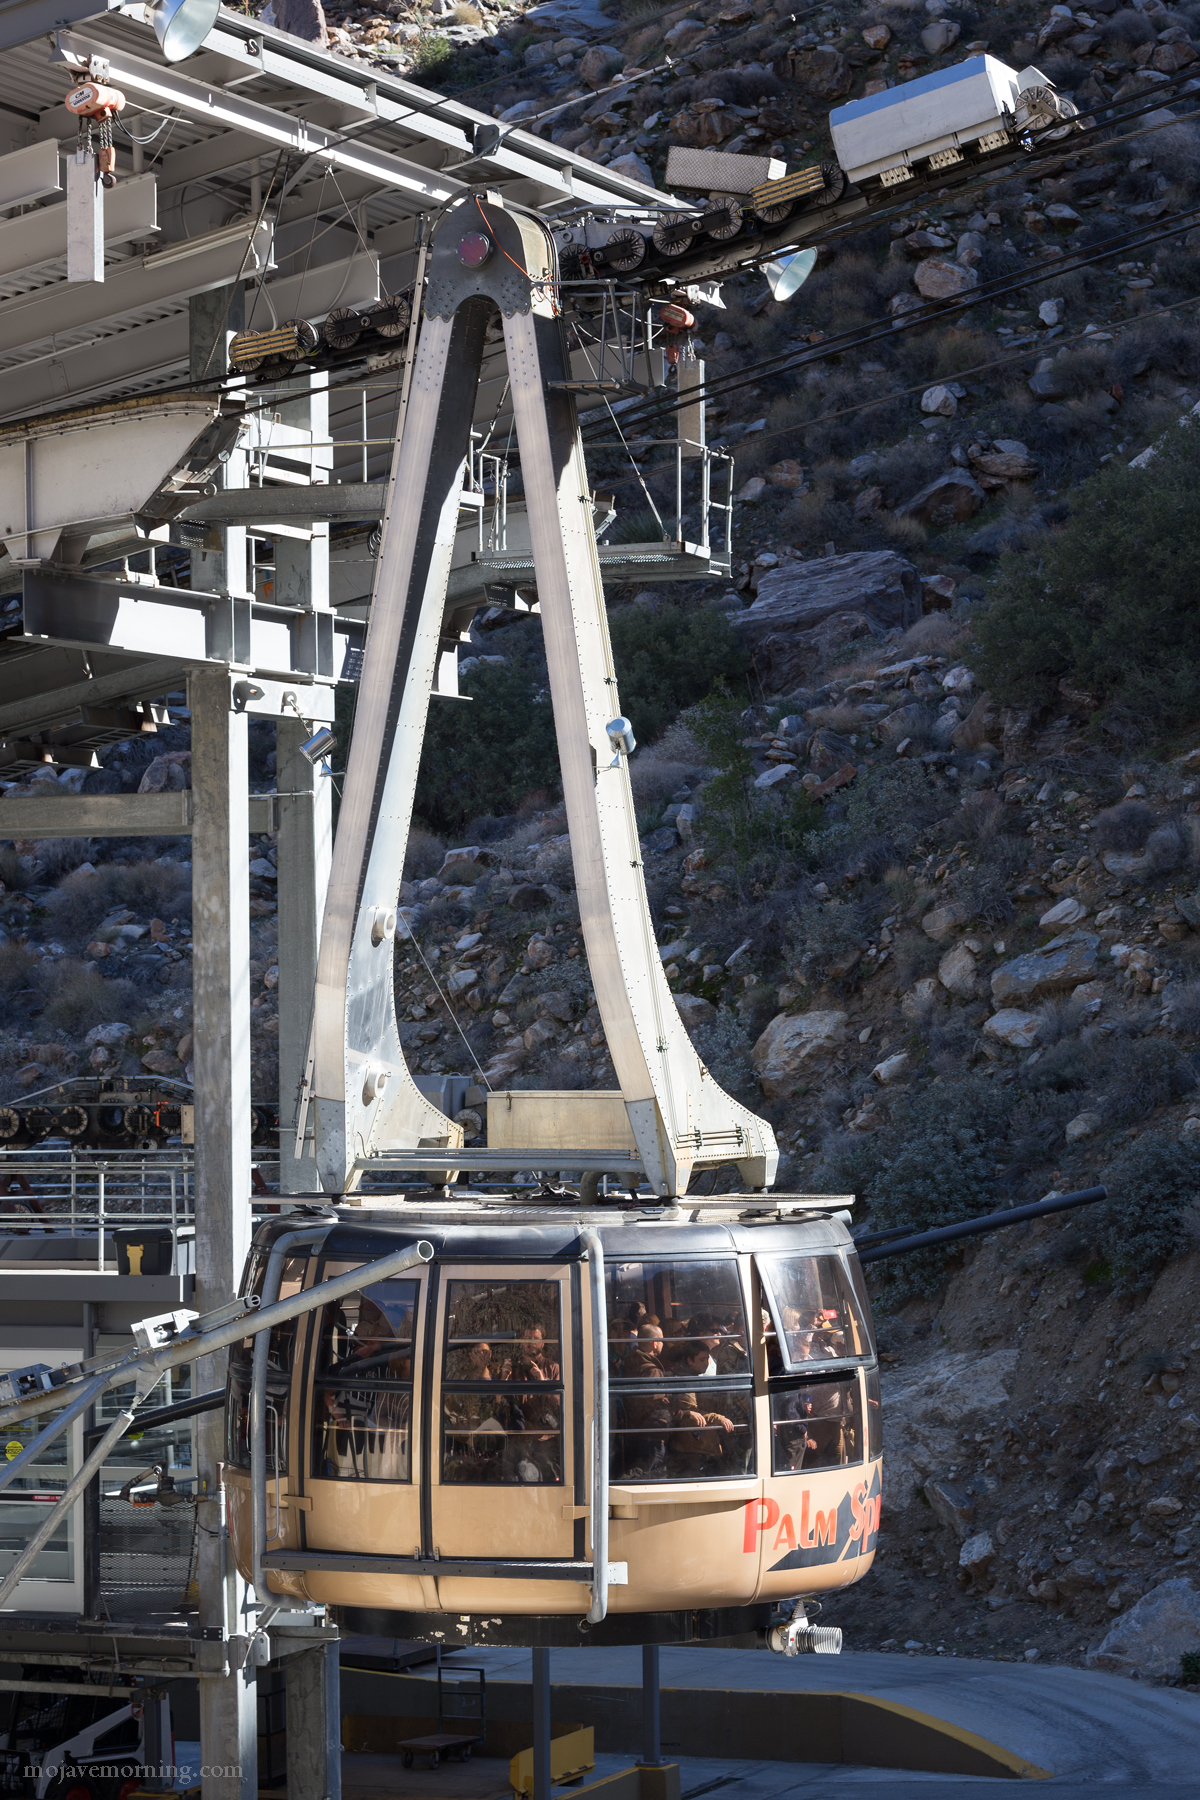 The floors of the Swiss-made tramcars revolve 360 degrees twice during the extremely steep ascent up the mountain. They are the worlds largest revolving tram cars... and the only ones in the Nothern hemisphere. The only other ones are at Table Mountain in South Africa.